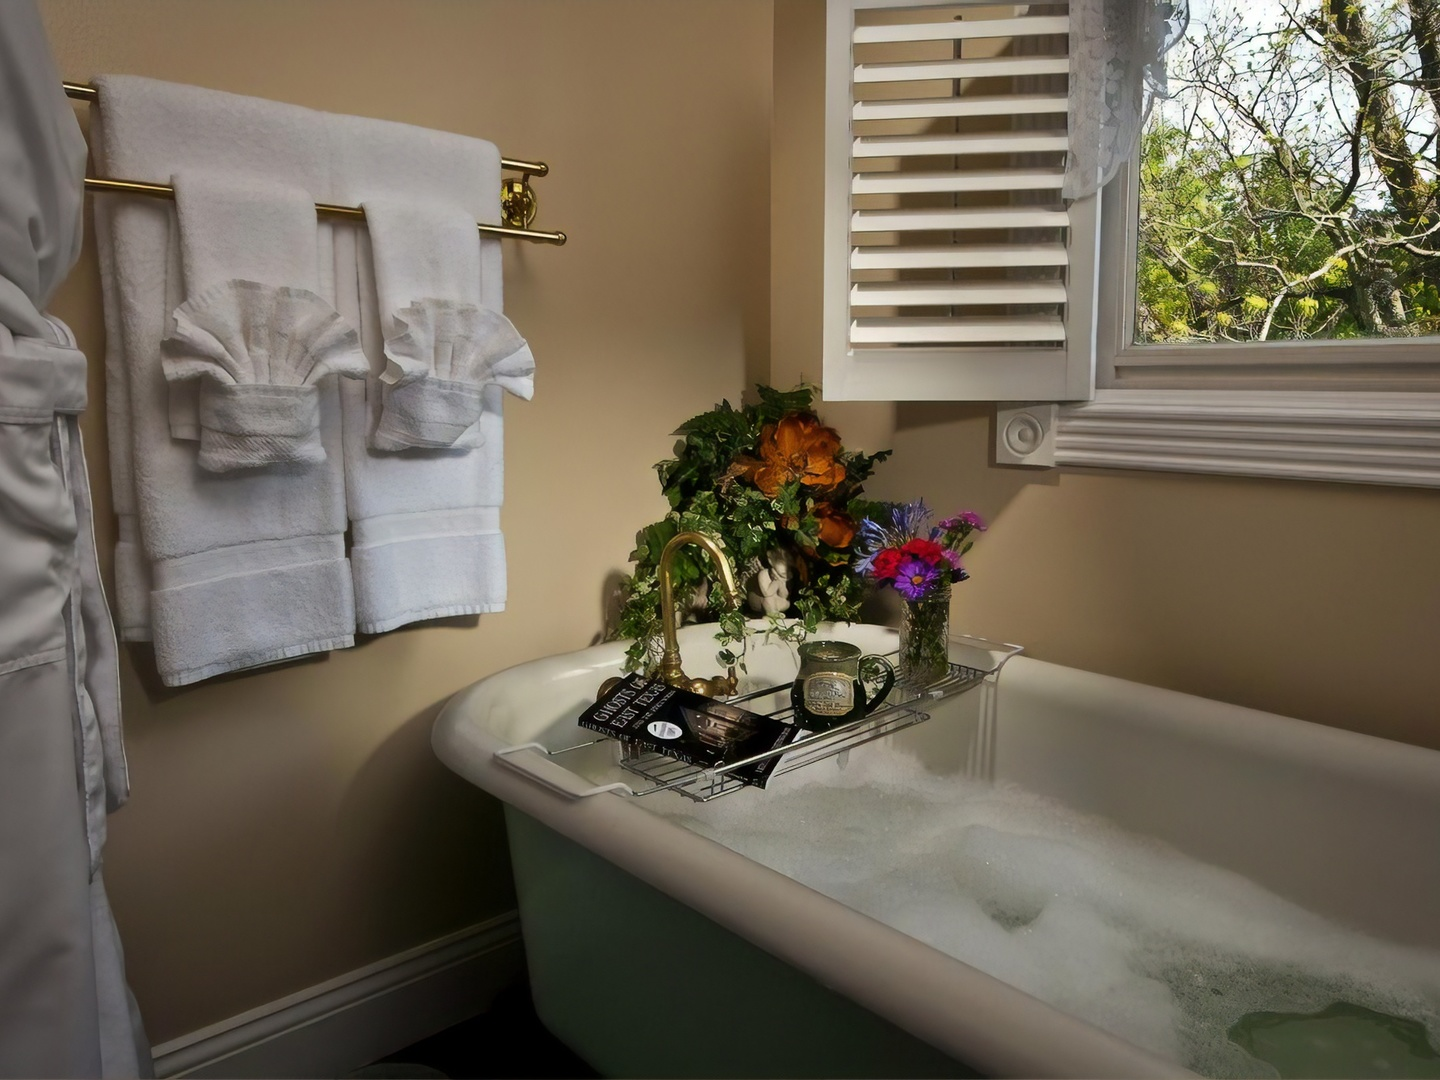 A large white tub sitting next to a window at White Oak Manor Bed and Breakfast.